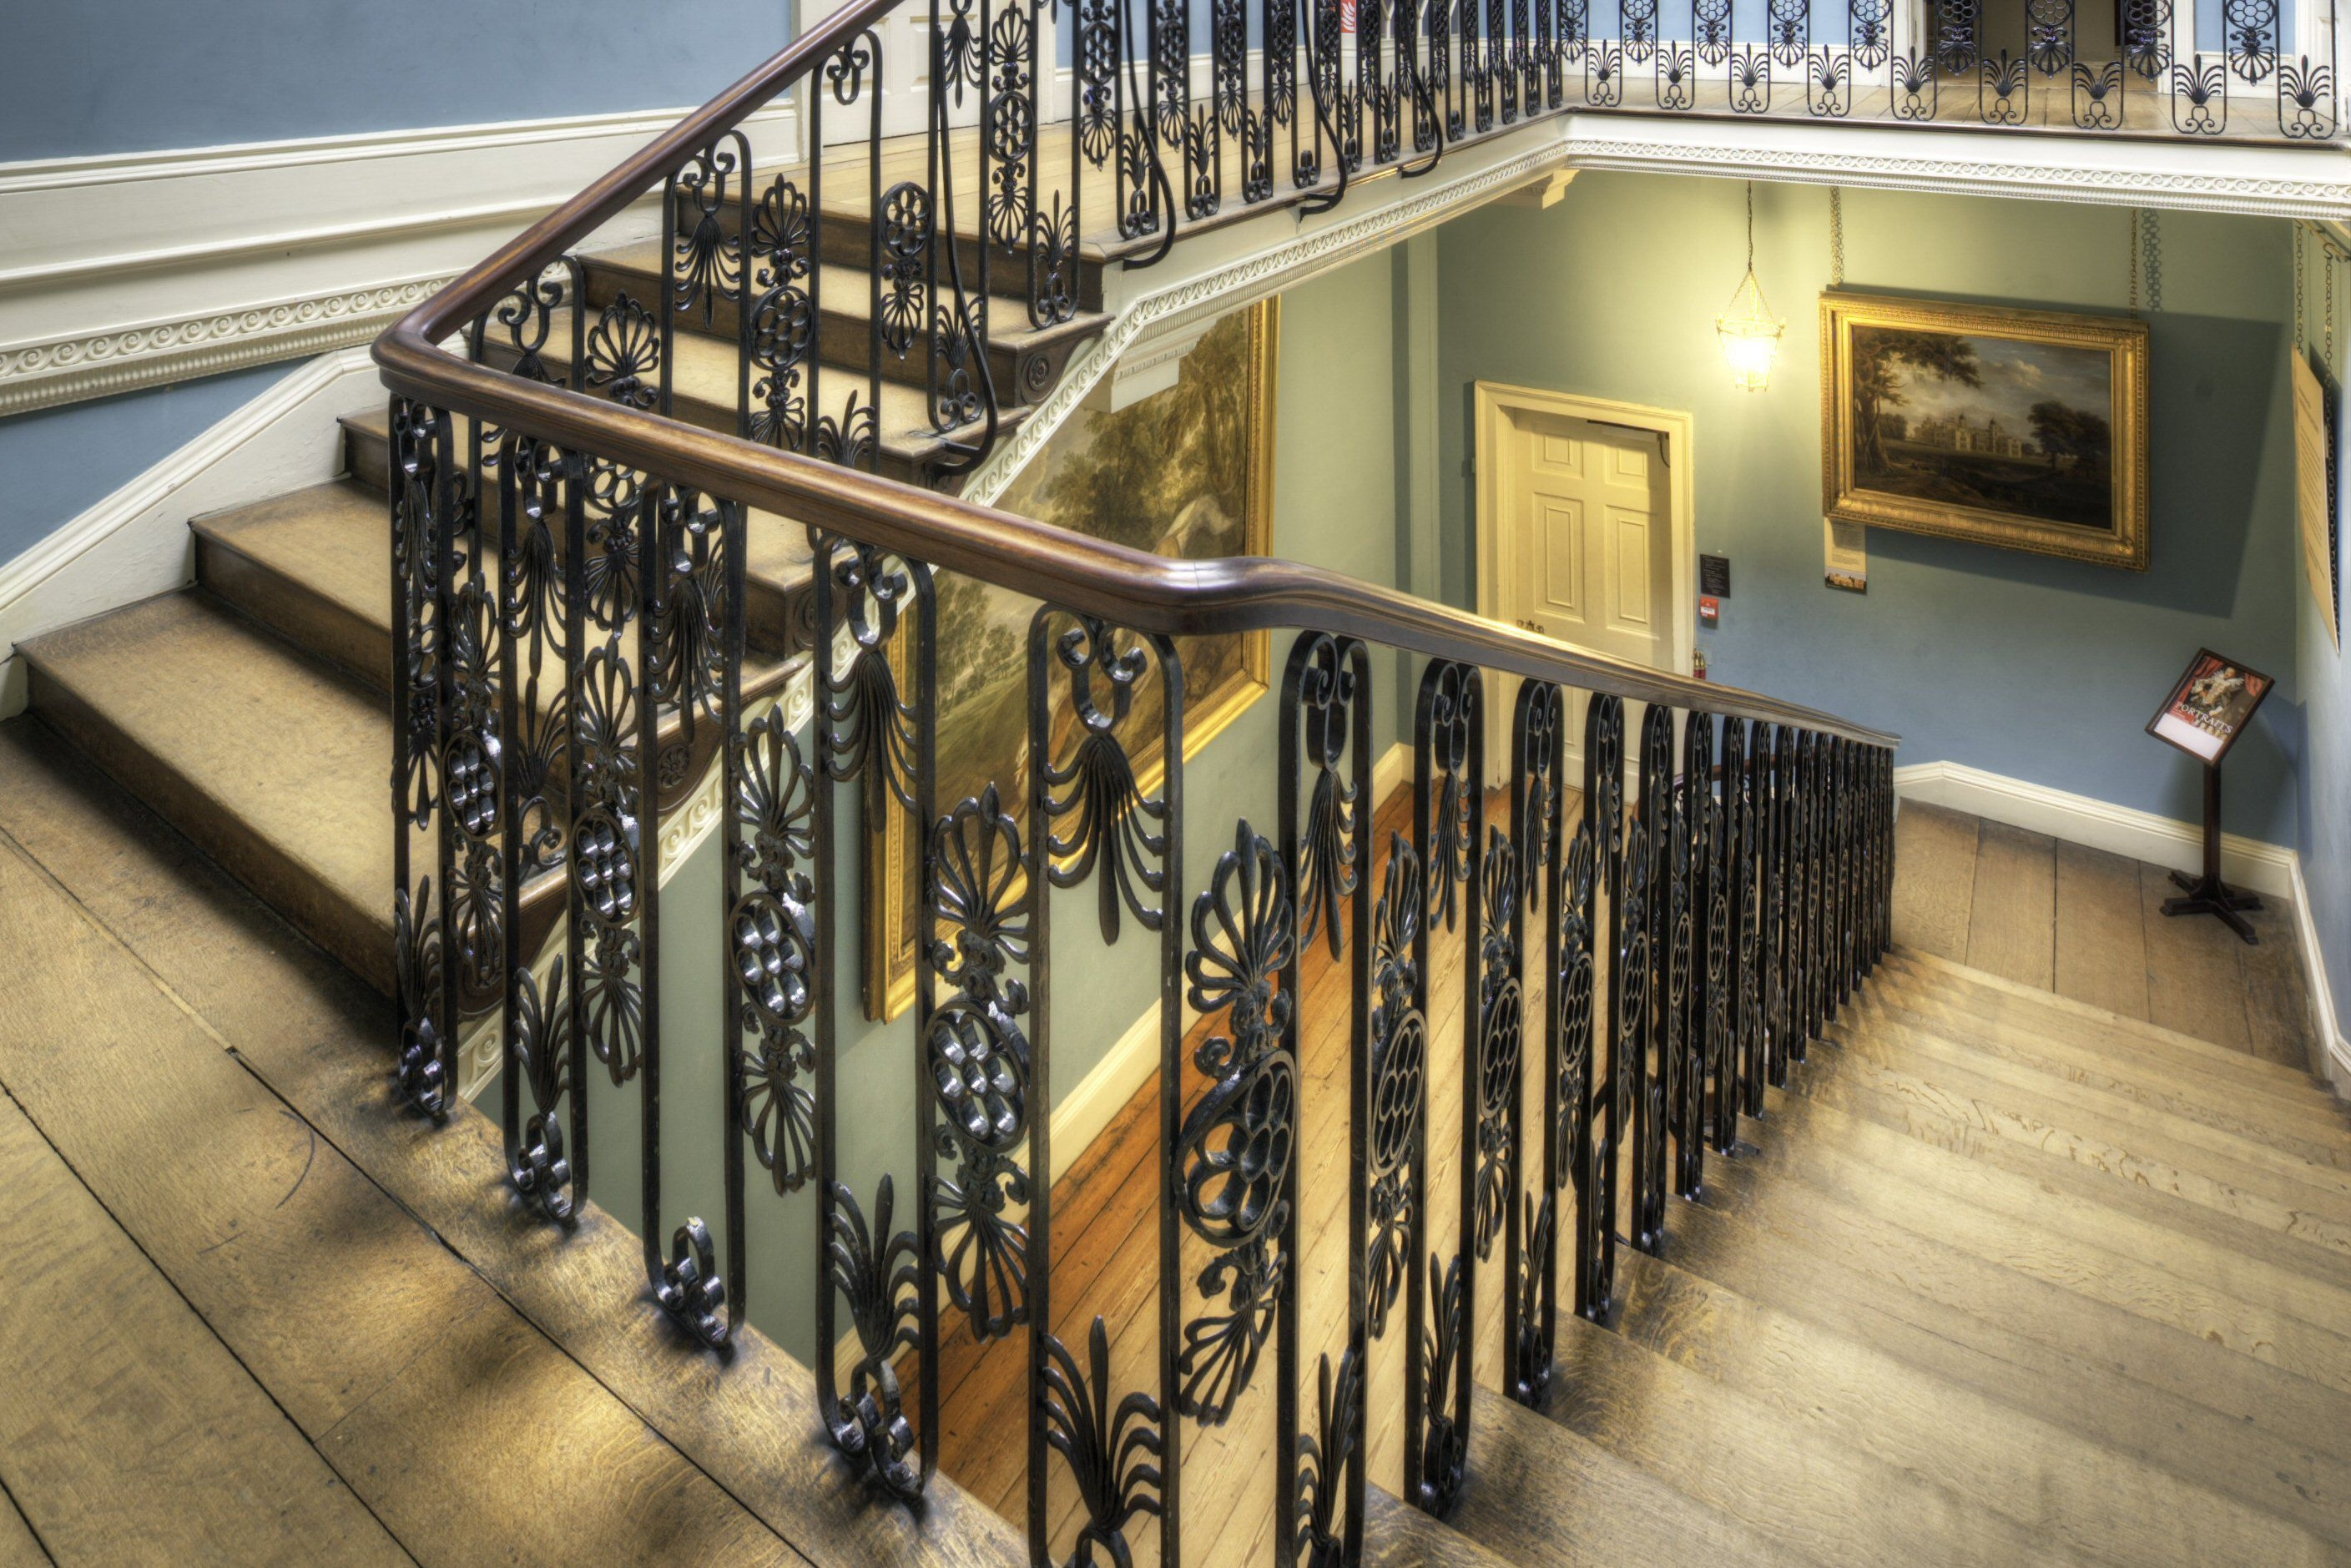 Everything To Know About Banisters And Balusters | Decorative Handrails For Stairs | Main Entrance | Solid Wood | Different Style | Elegant | Steel Pipe